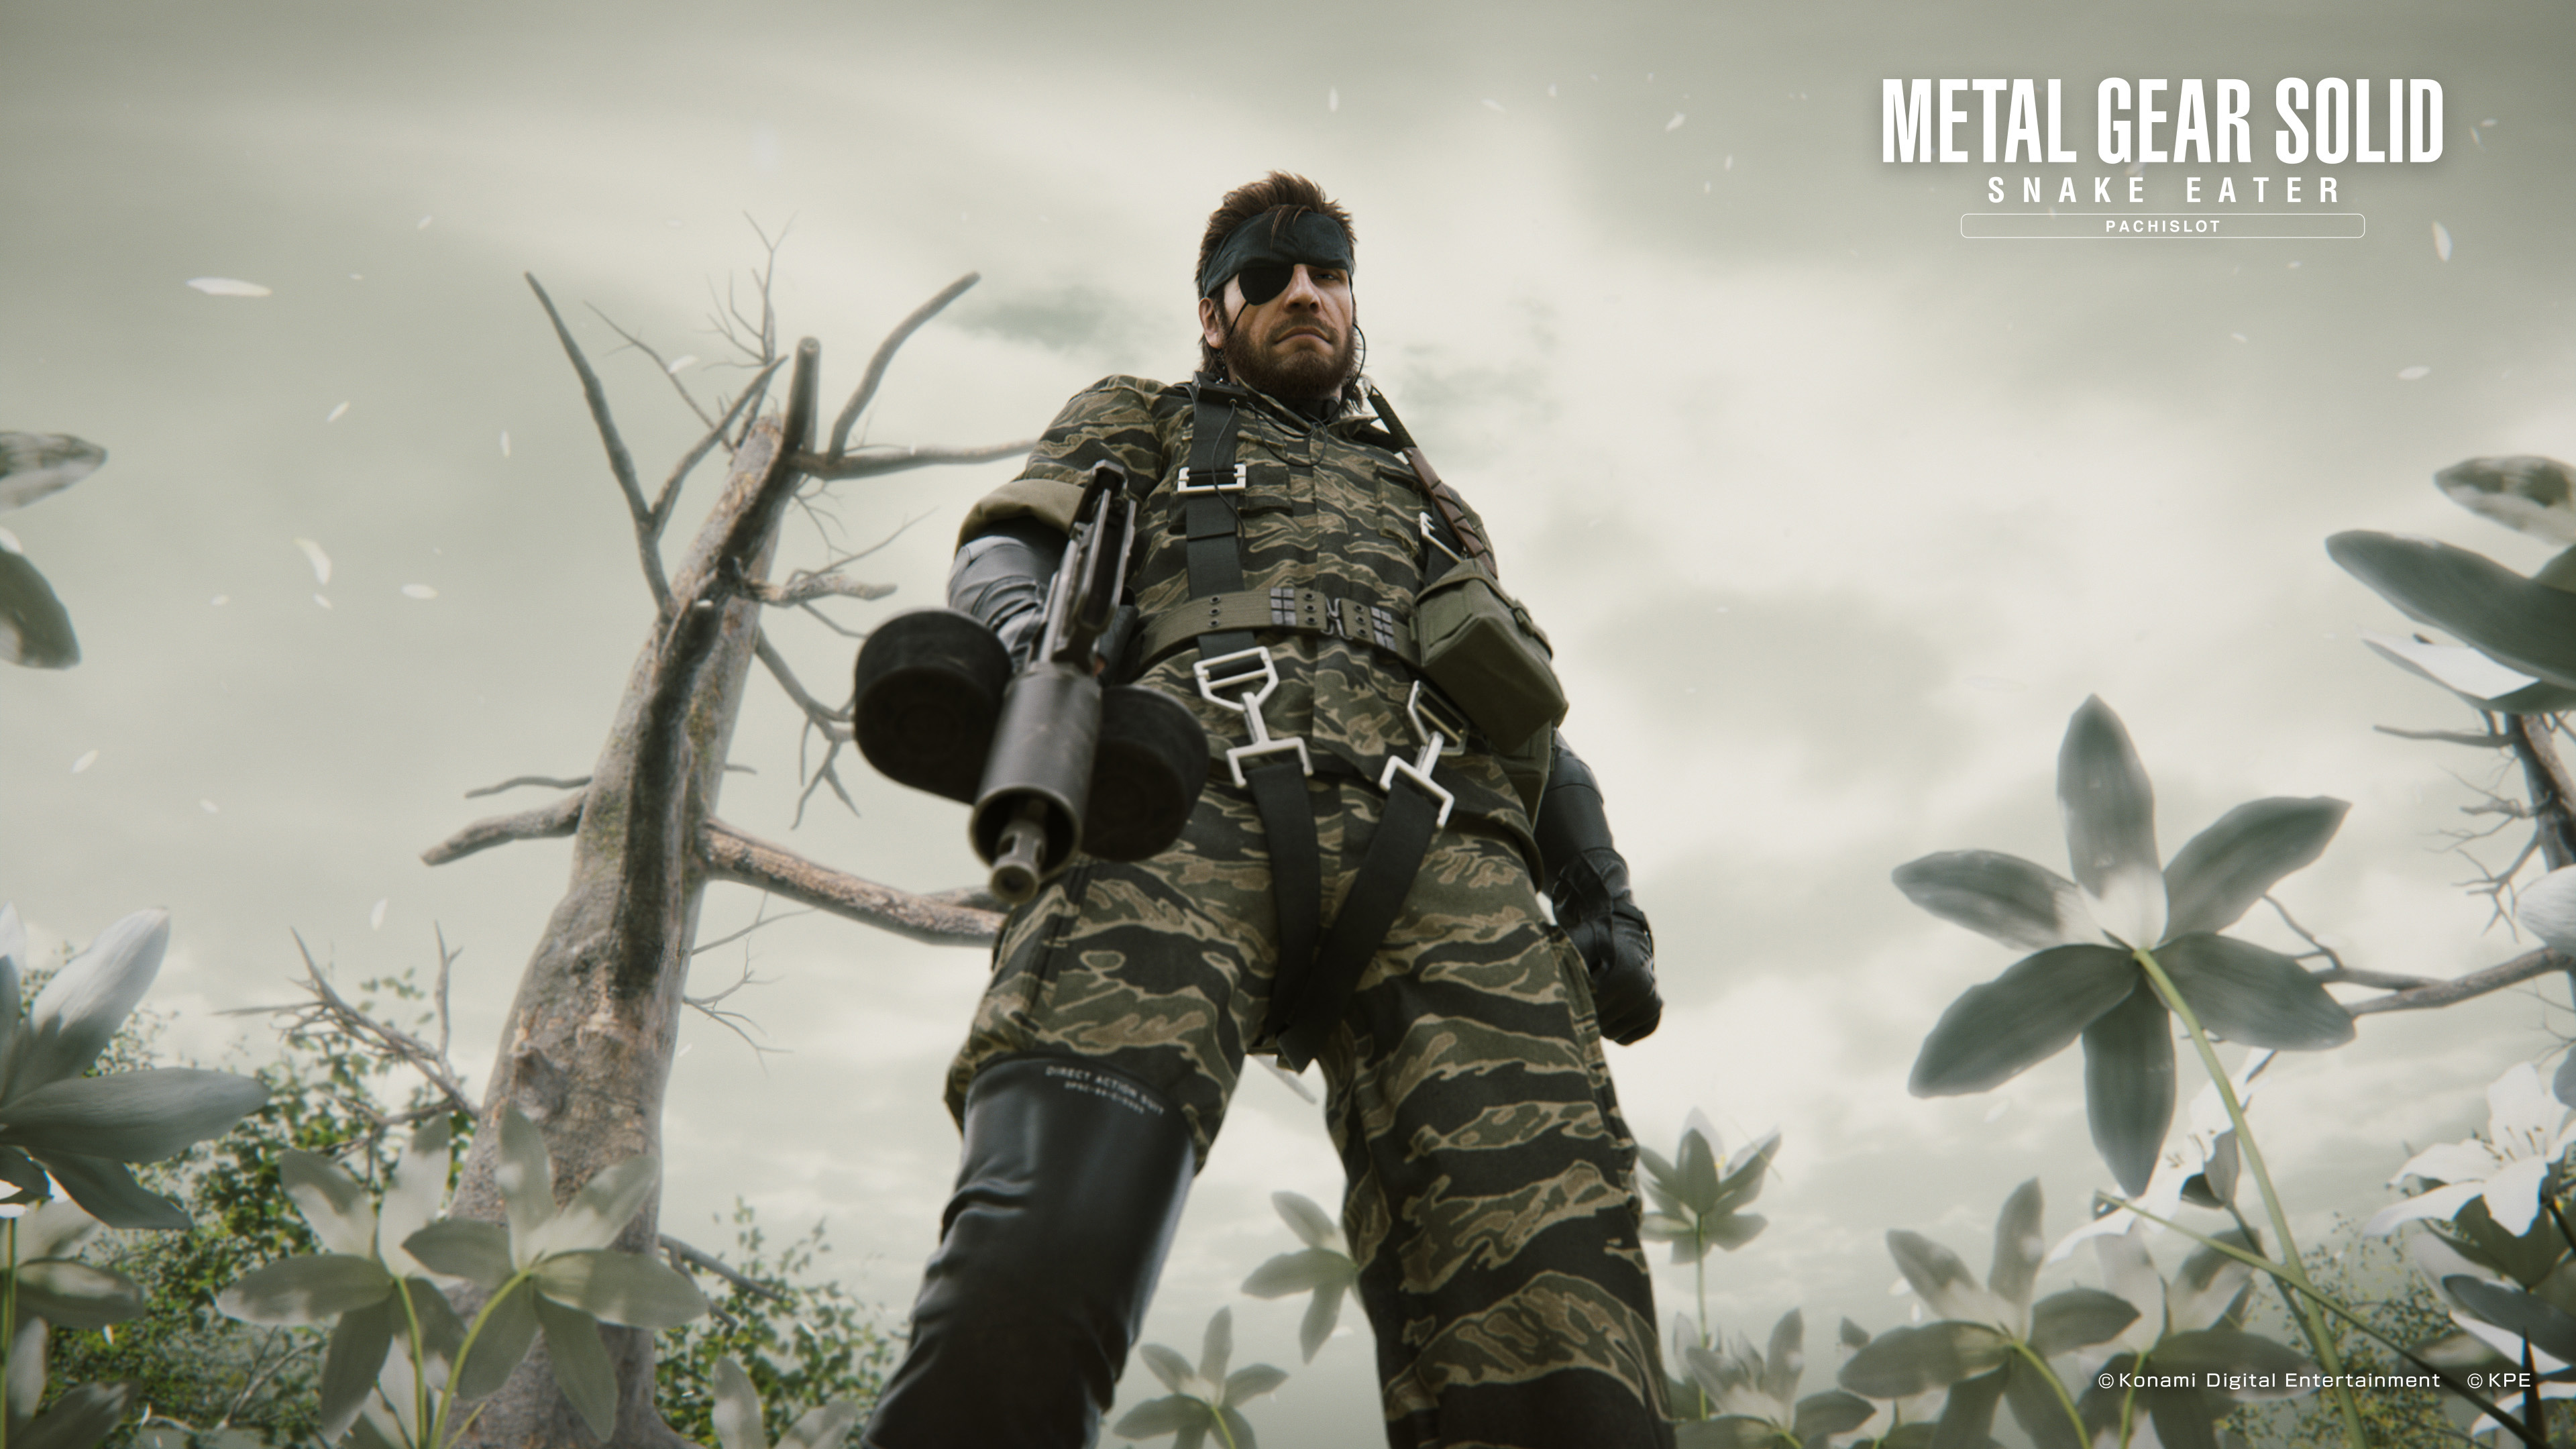 mgs-snake-eater-pachislot-wallpaper-pc-6